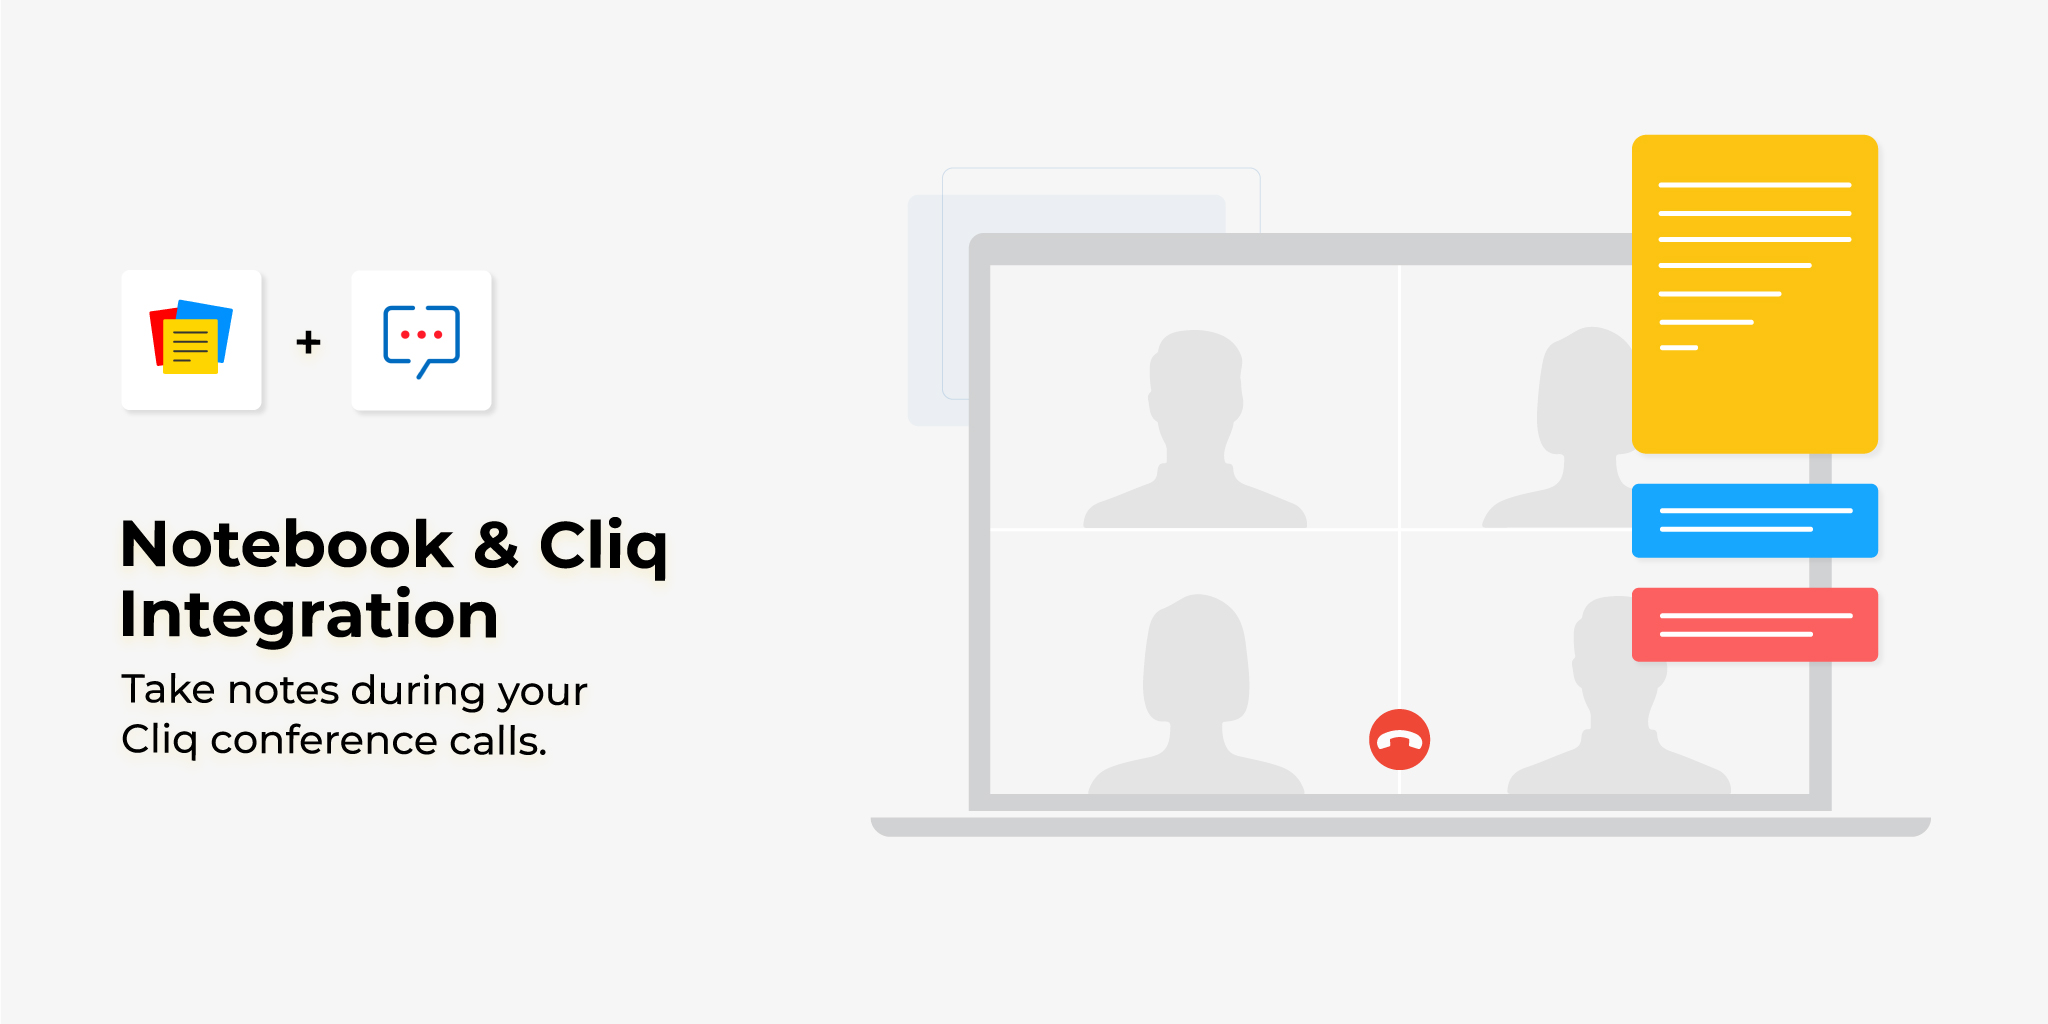 Notebook and Cliq Integration: take notes during your Cliq conference calls